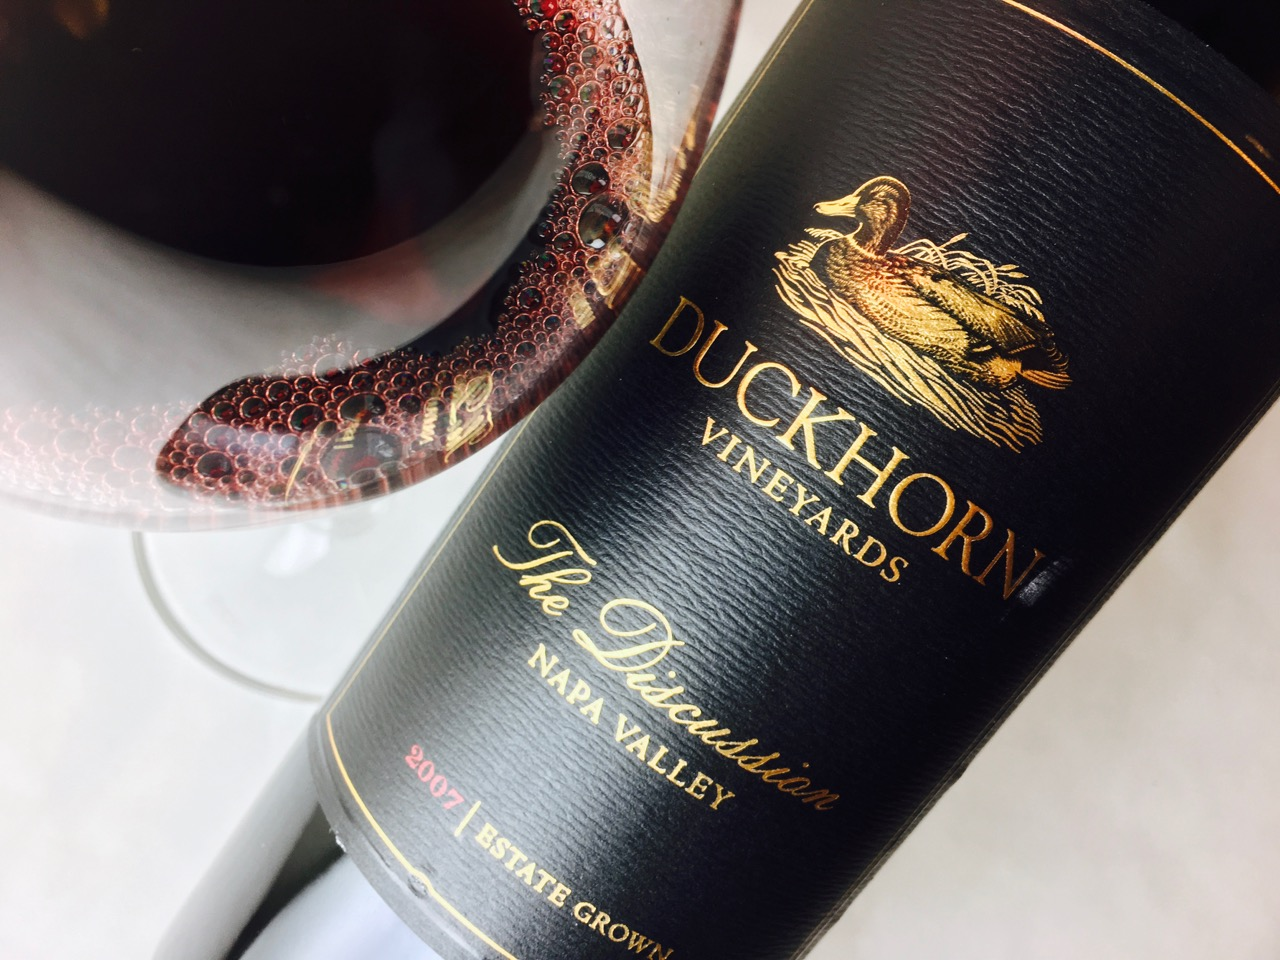 2007 Duckhorn Vineyards The Discussion Red Blend Napa Valley